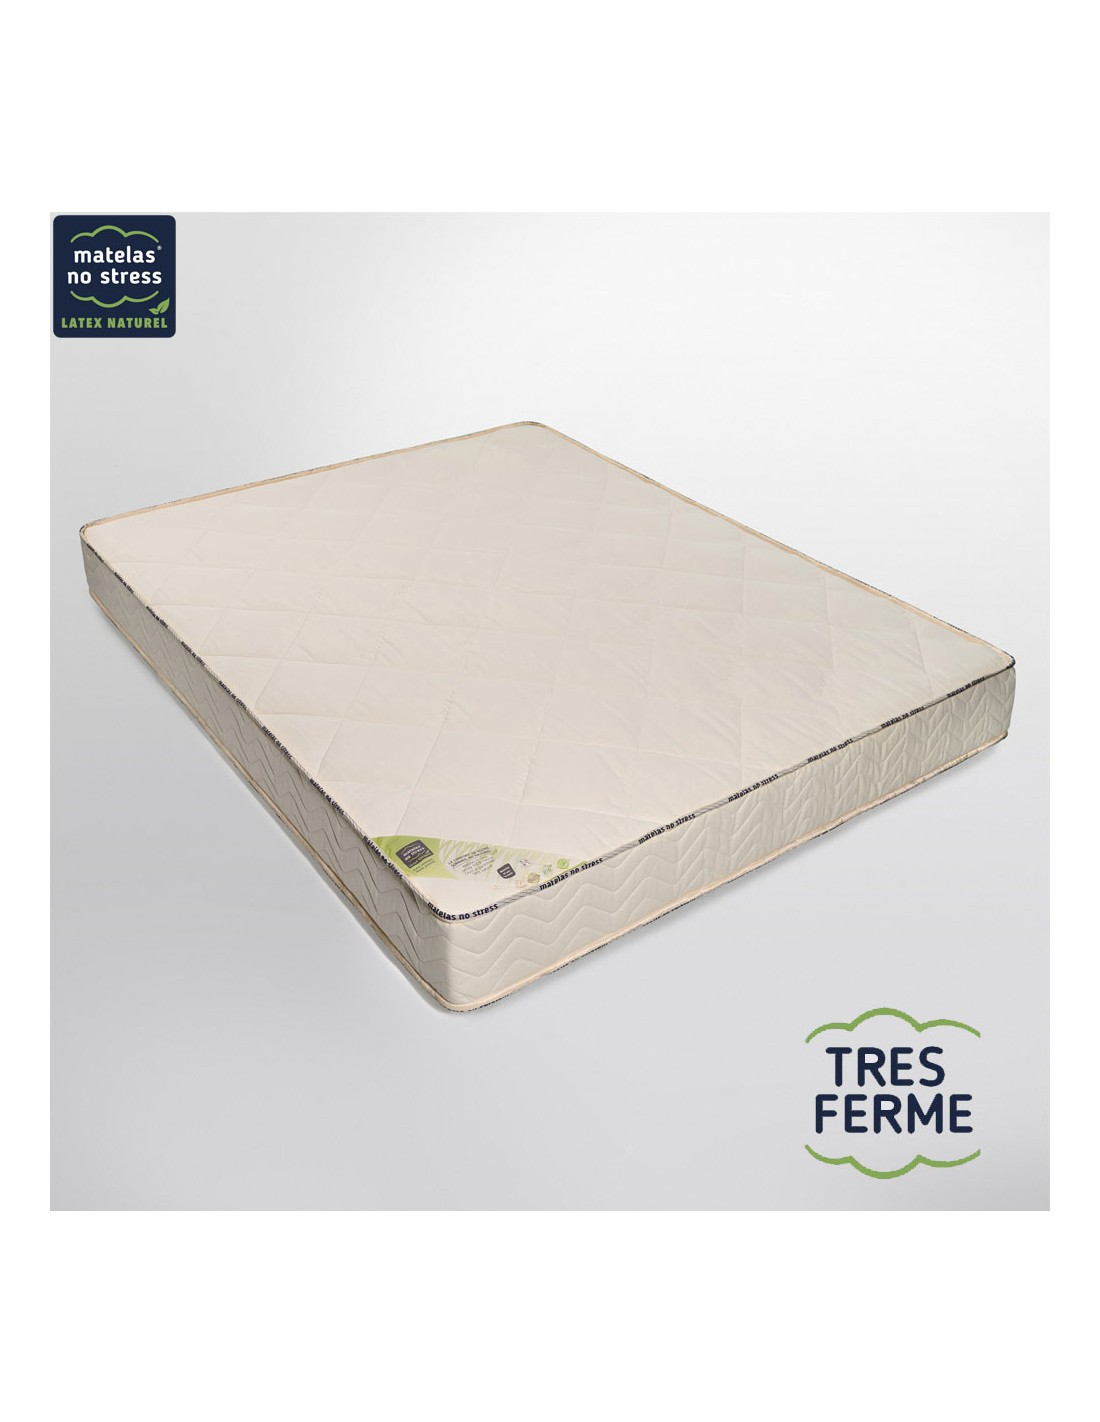 matelas latex naturel 140x200 bio nergie tr s ferme 21 cm. Black Bedroom Furniture Sets. Home Design Ideas